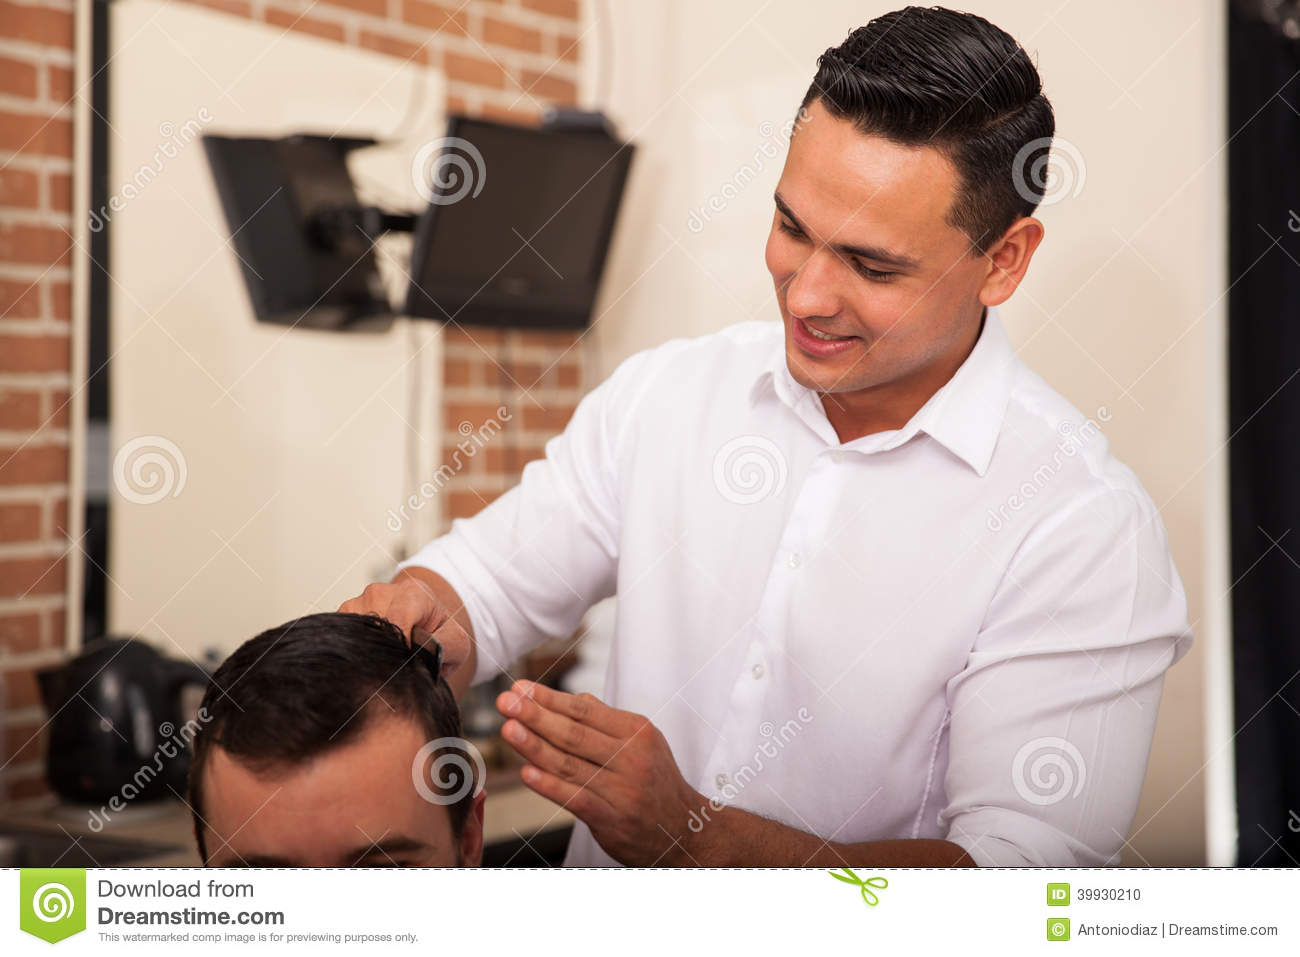 Handsome Barber At Work Stock Photo Image Of Happy Male 39930210